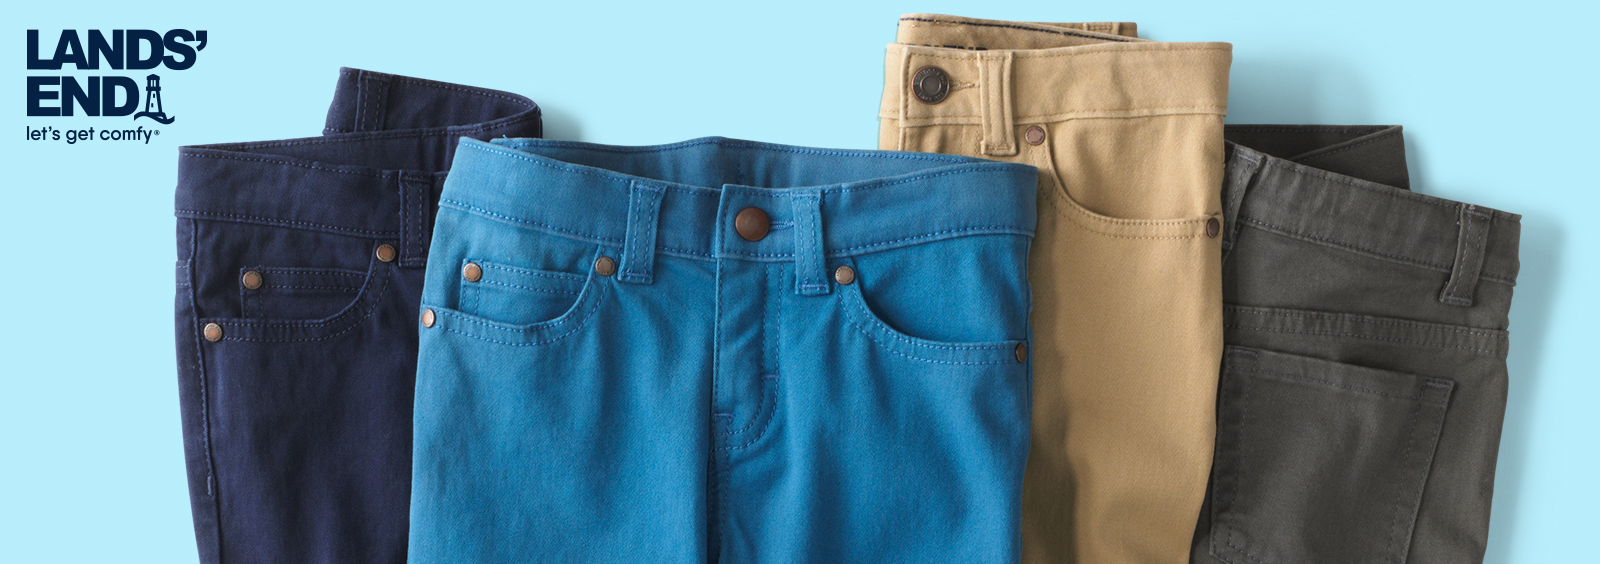 Perfect Boys' Jeans for Kids of All Sizes